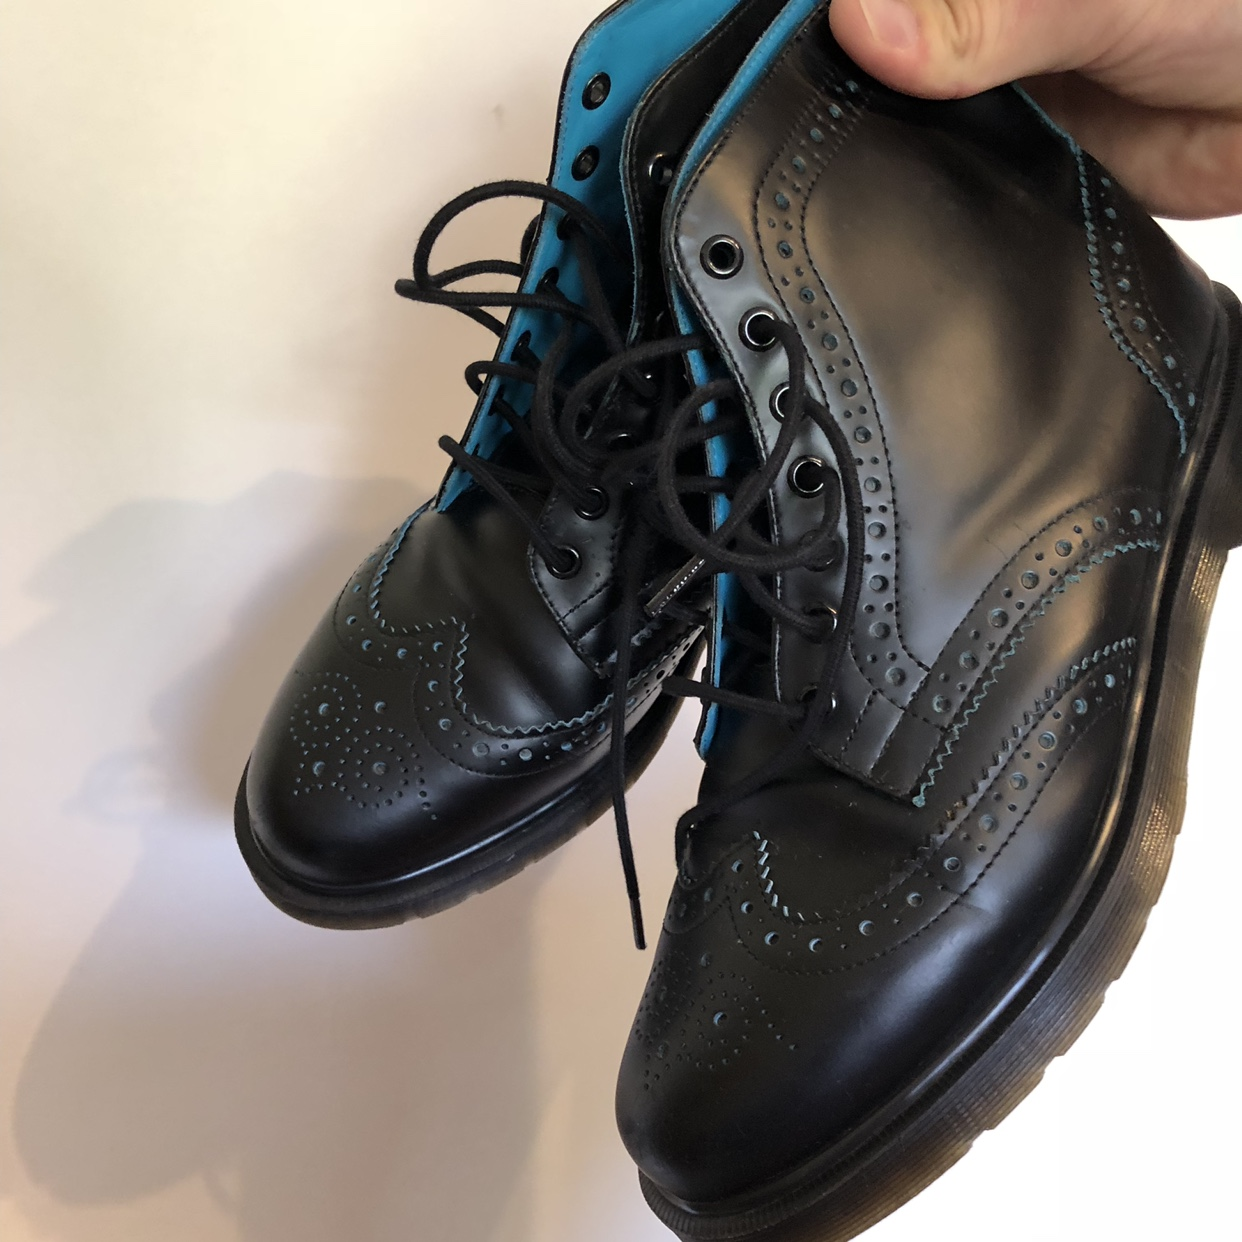 Planned elenco impicciarsi  WTS boots Dr. Martens doc Anthony Cond. 10/10 DS... - Depop